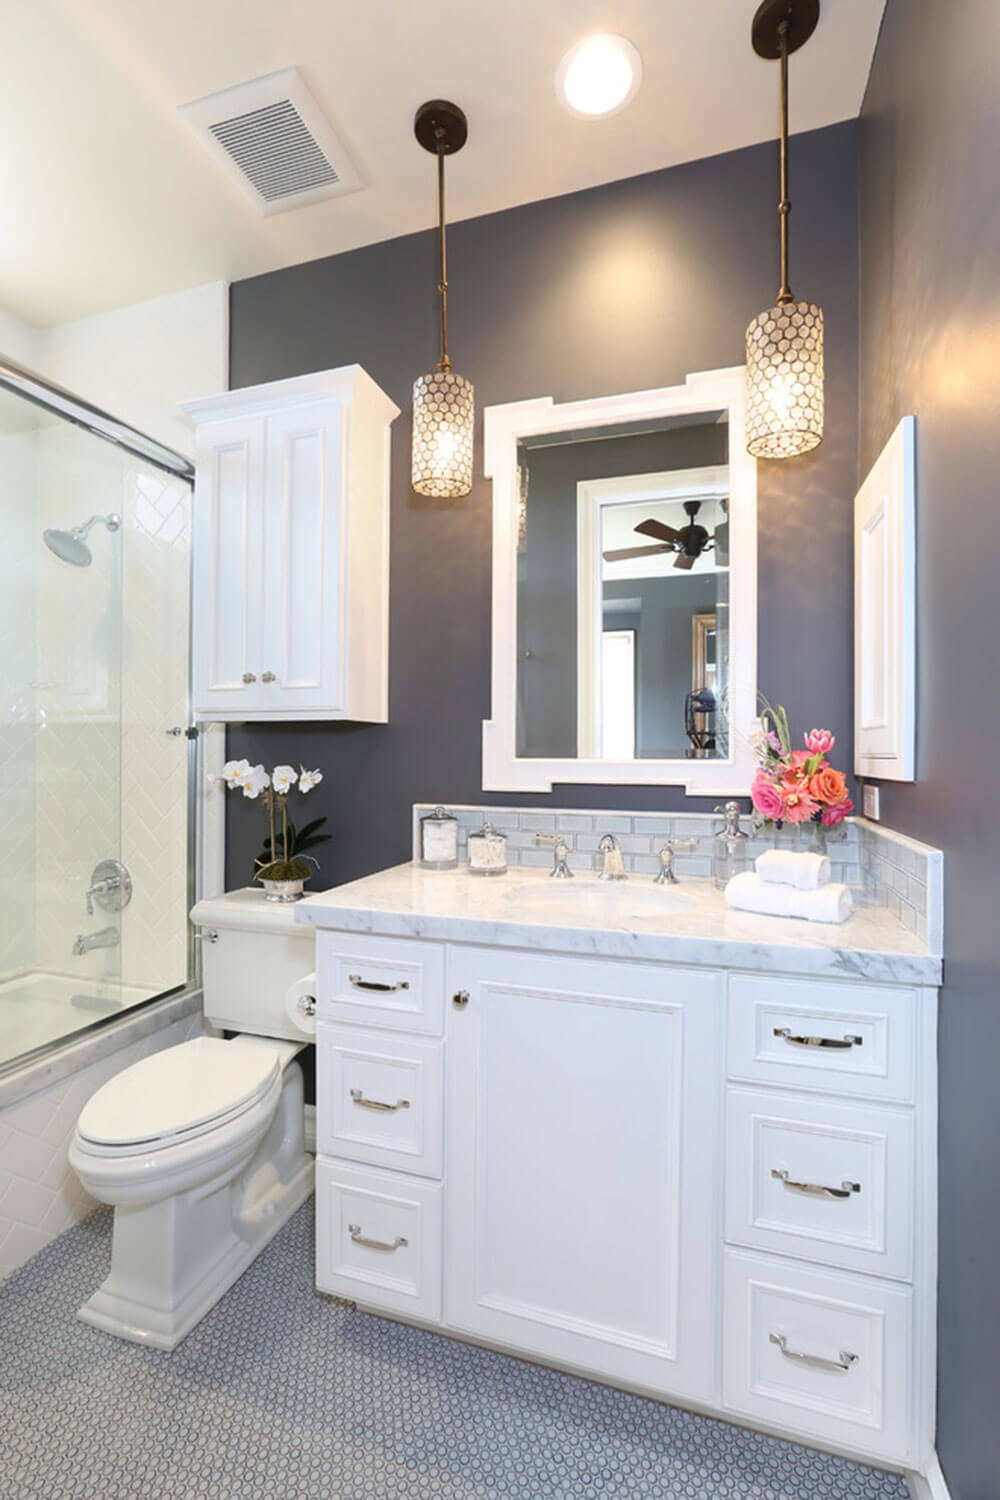 32 Best Small Bathroom Design Ideas And Decorations For 2019 - Small-bathroom-remodels